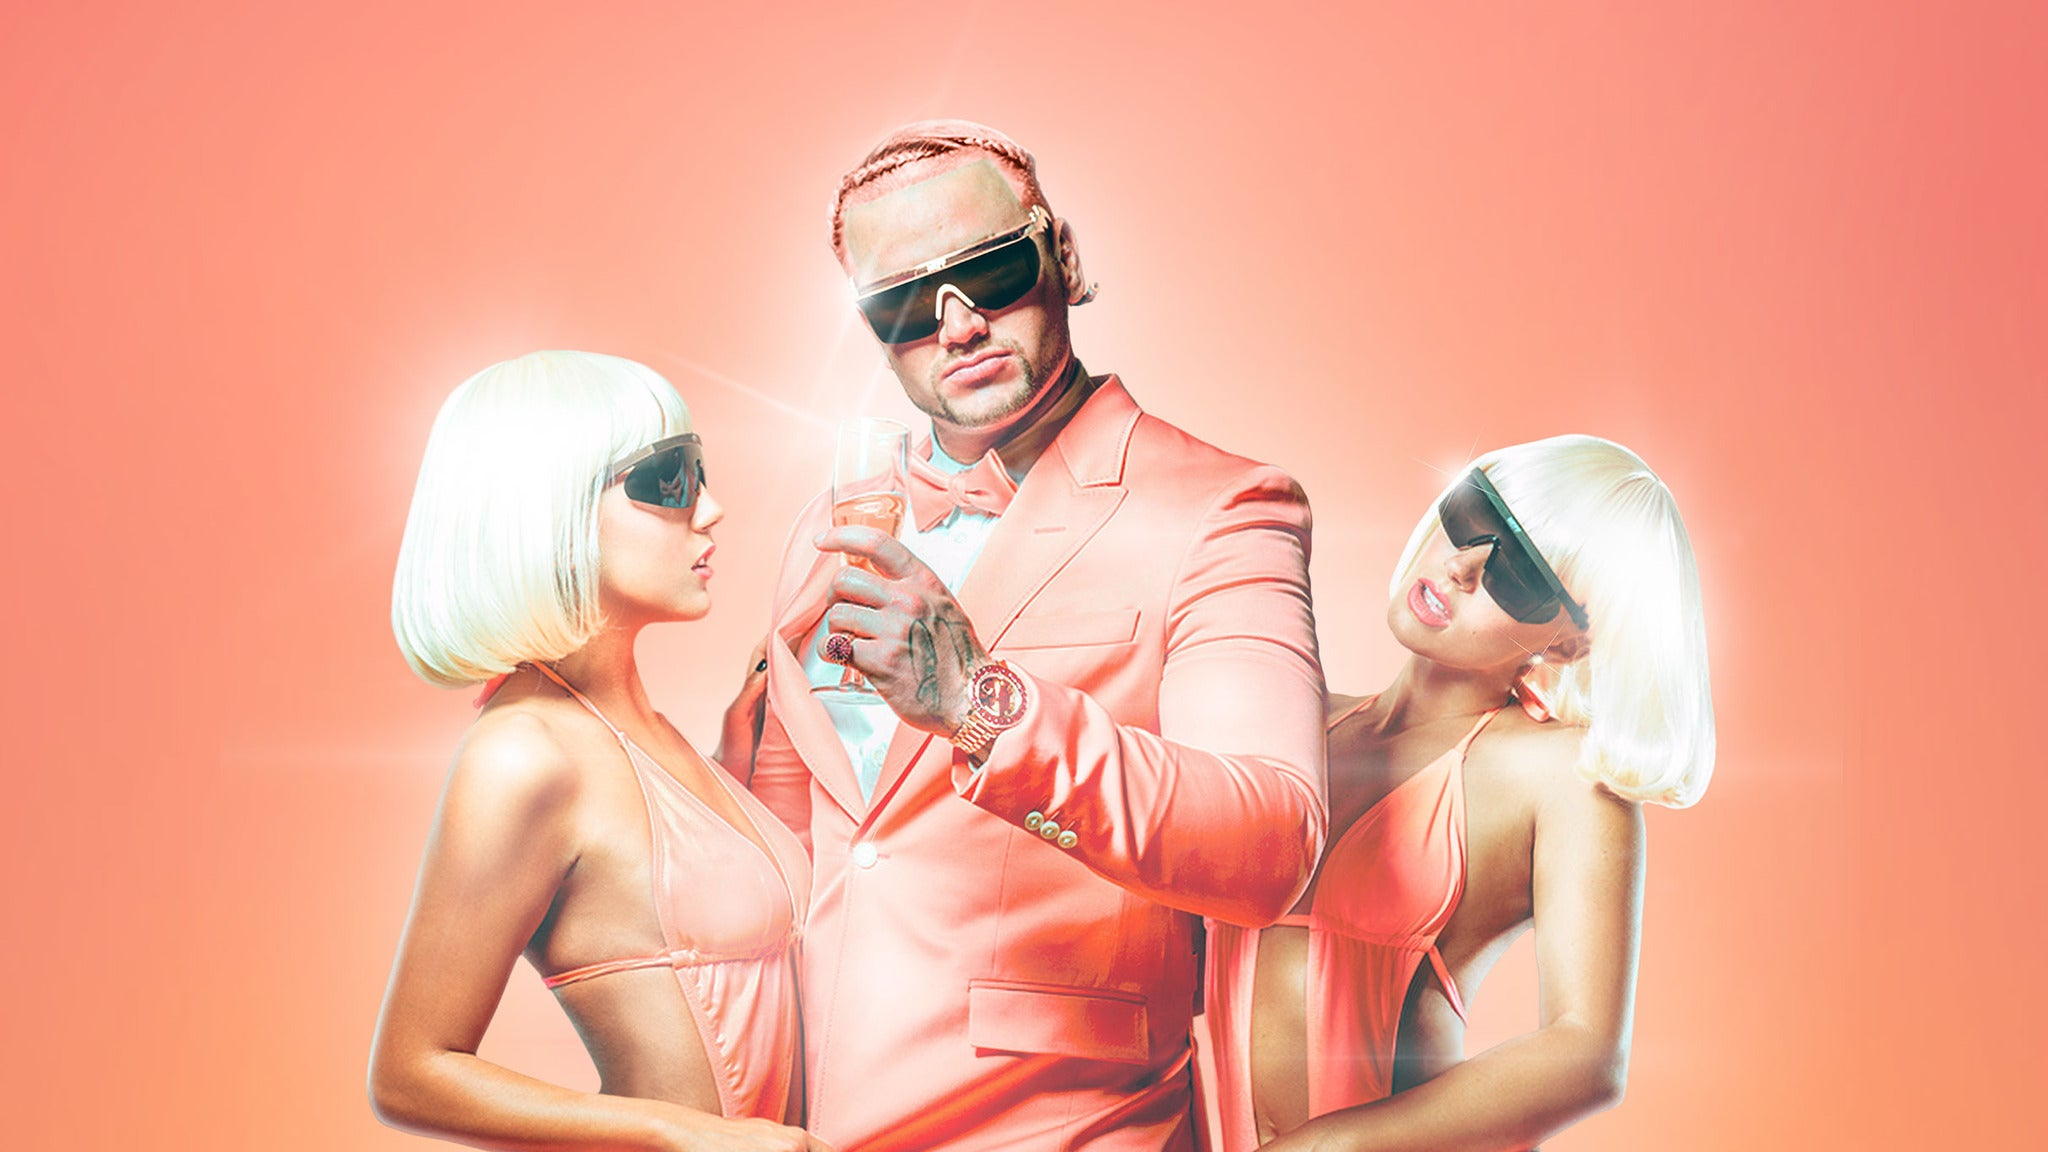 RIFF RAFF: THE PEACH PANTHER TOUR at Theatre of Living Arts